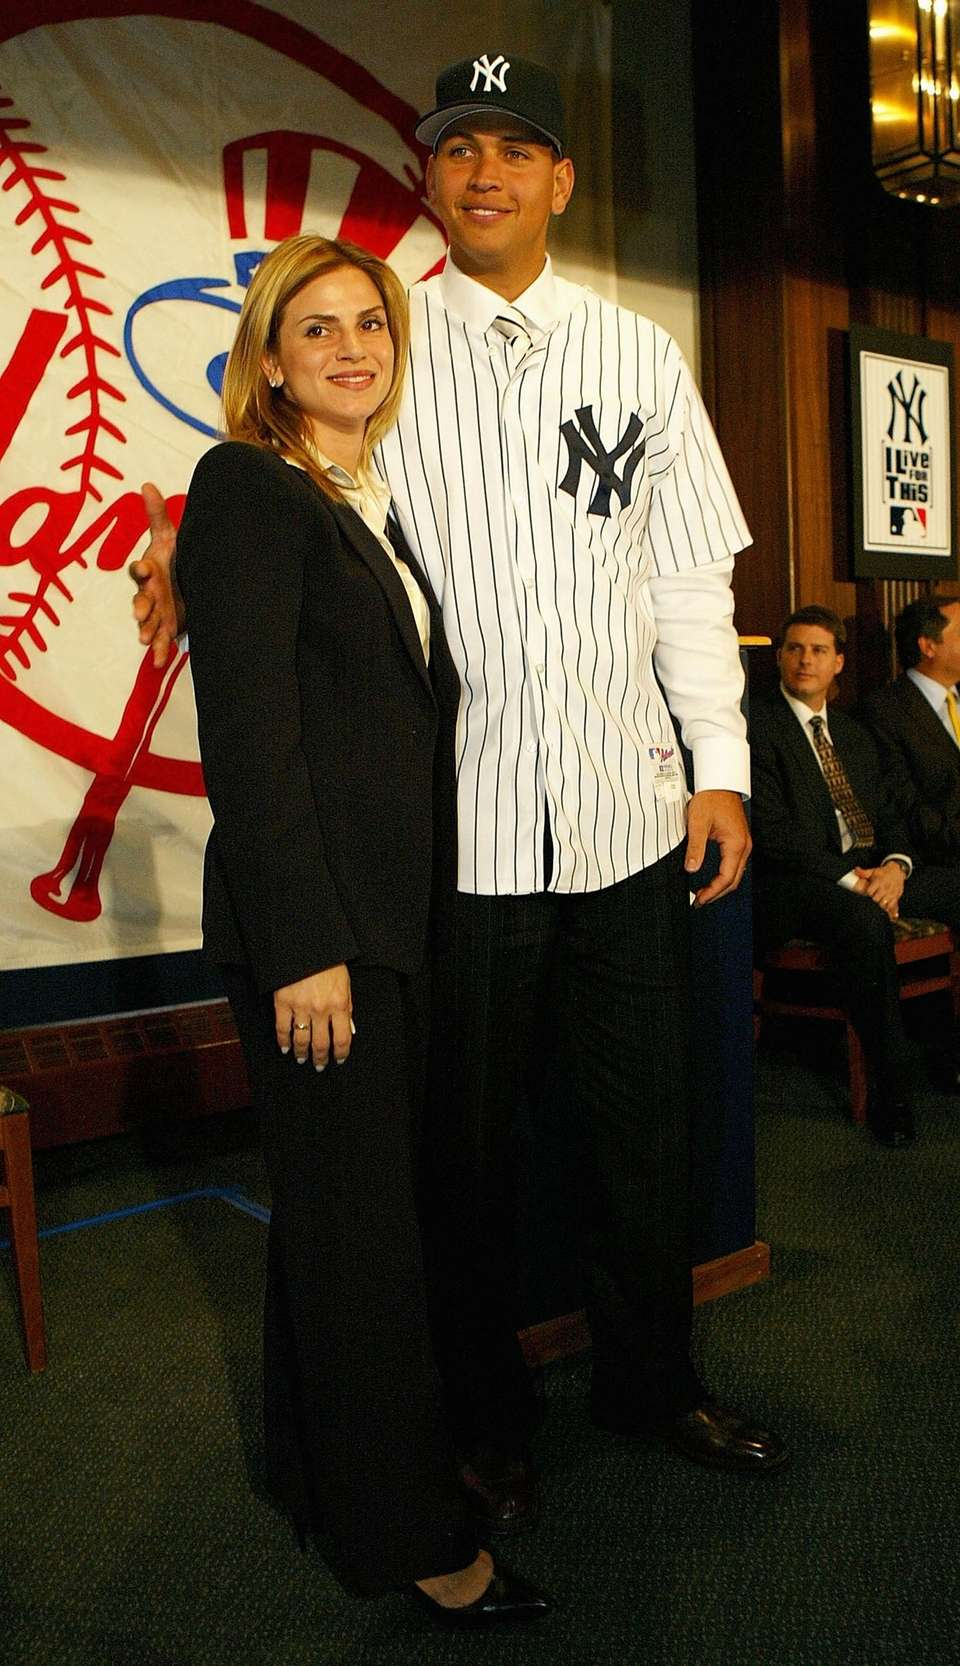 Alex Rodriguez and his wife, Cynthia, at a